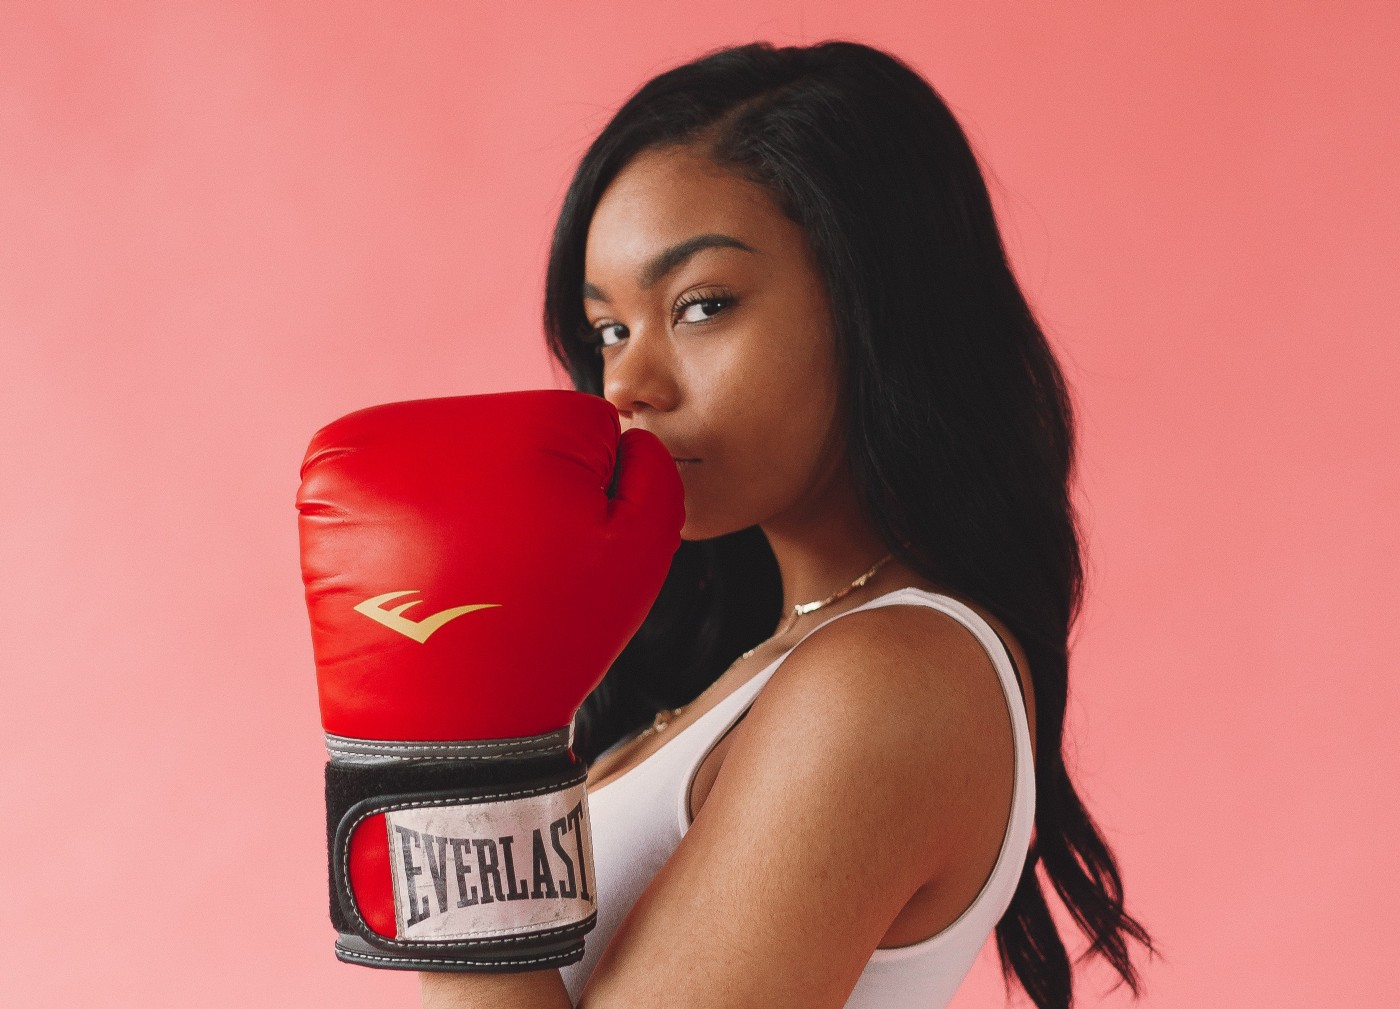 A young woman wearing Everlast boxing gloves looking into the camera lens